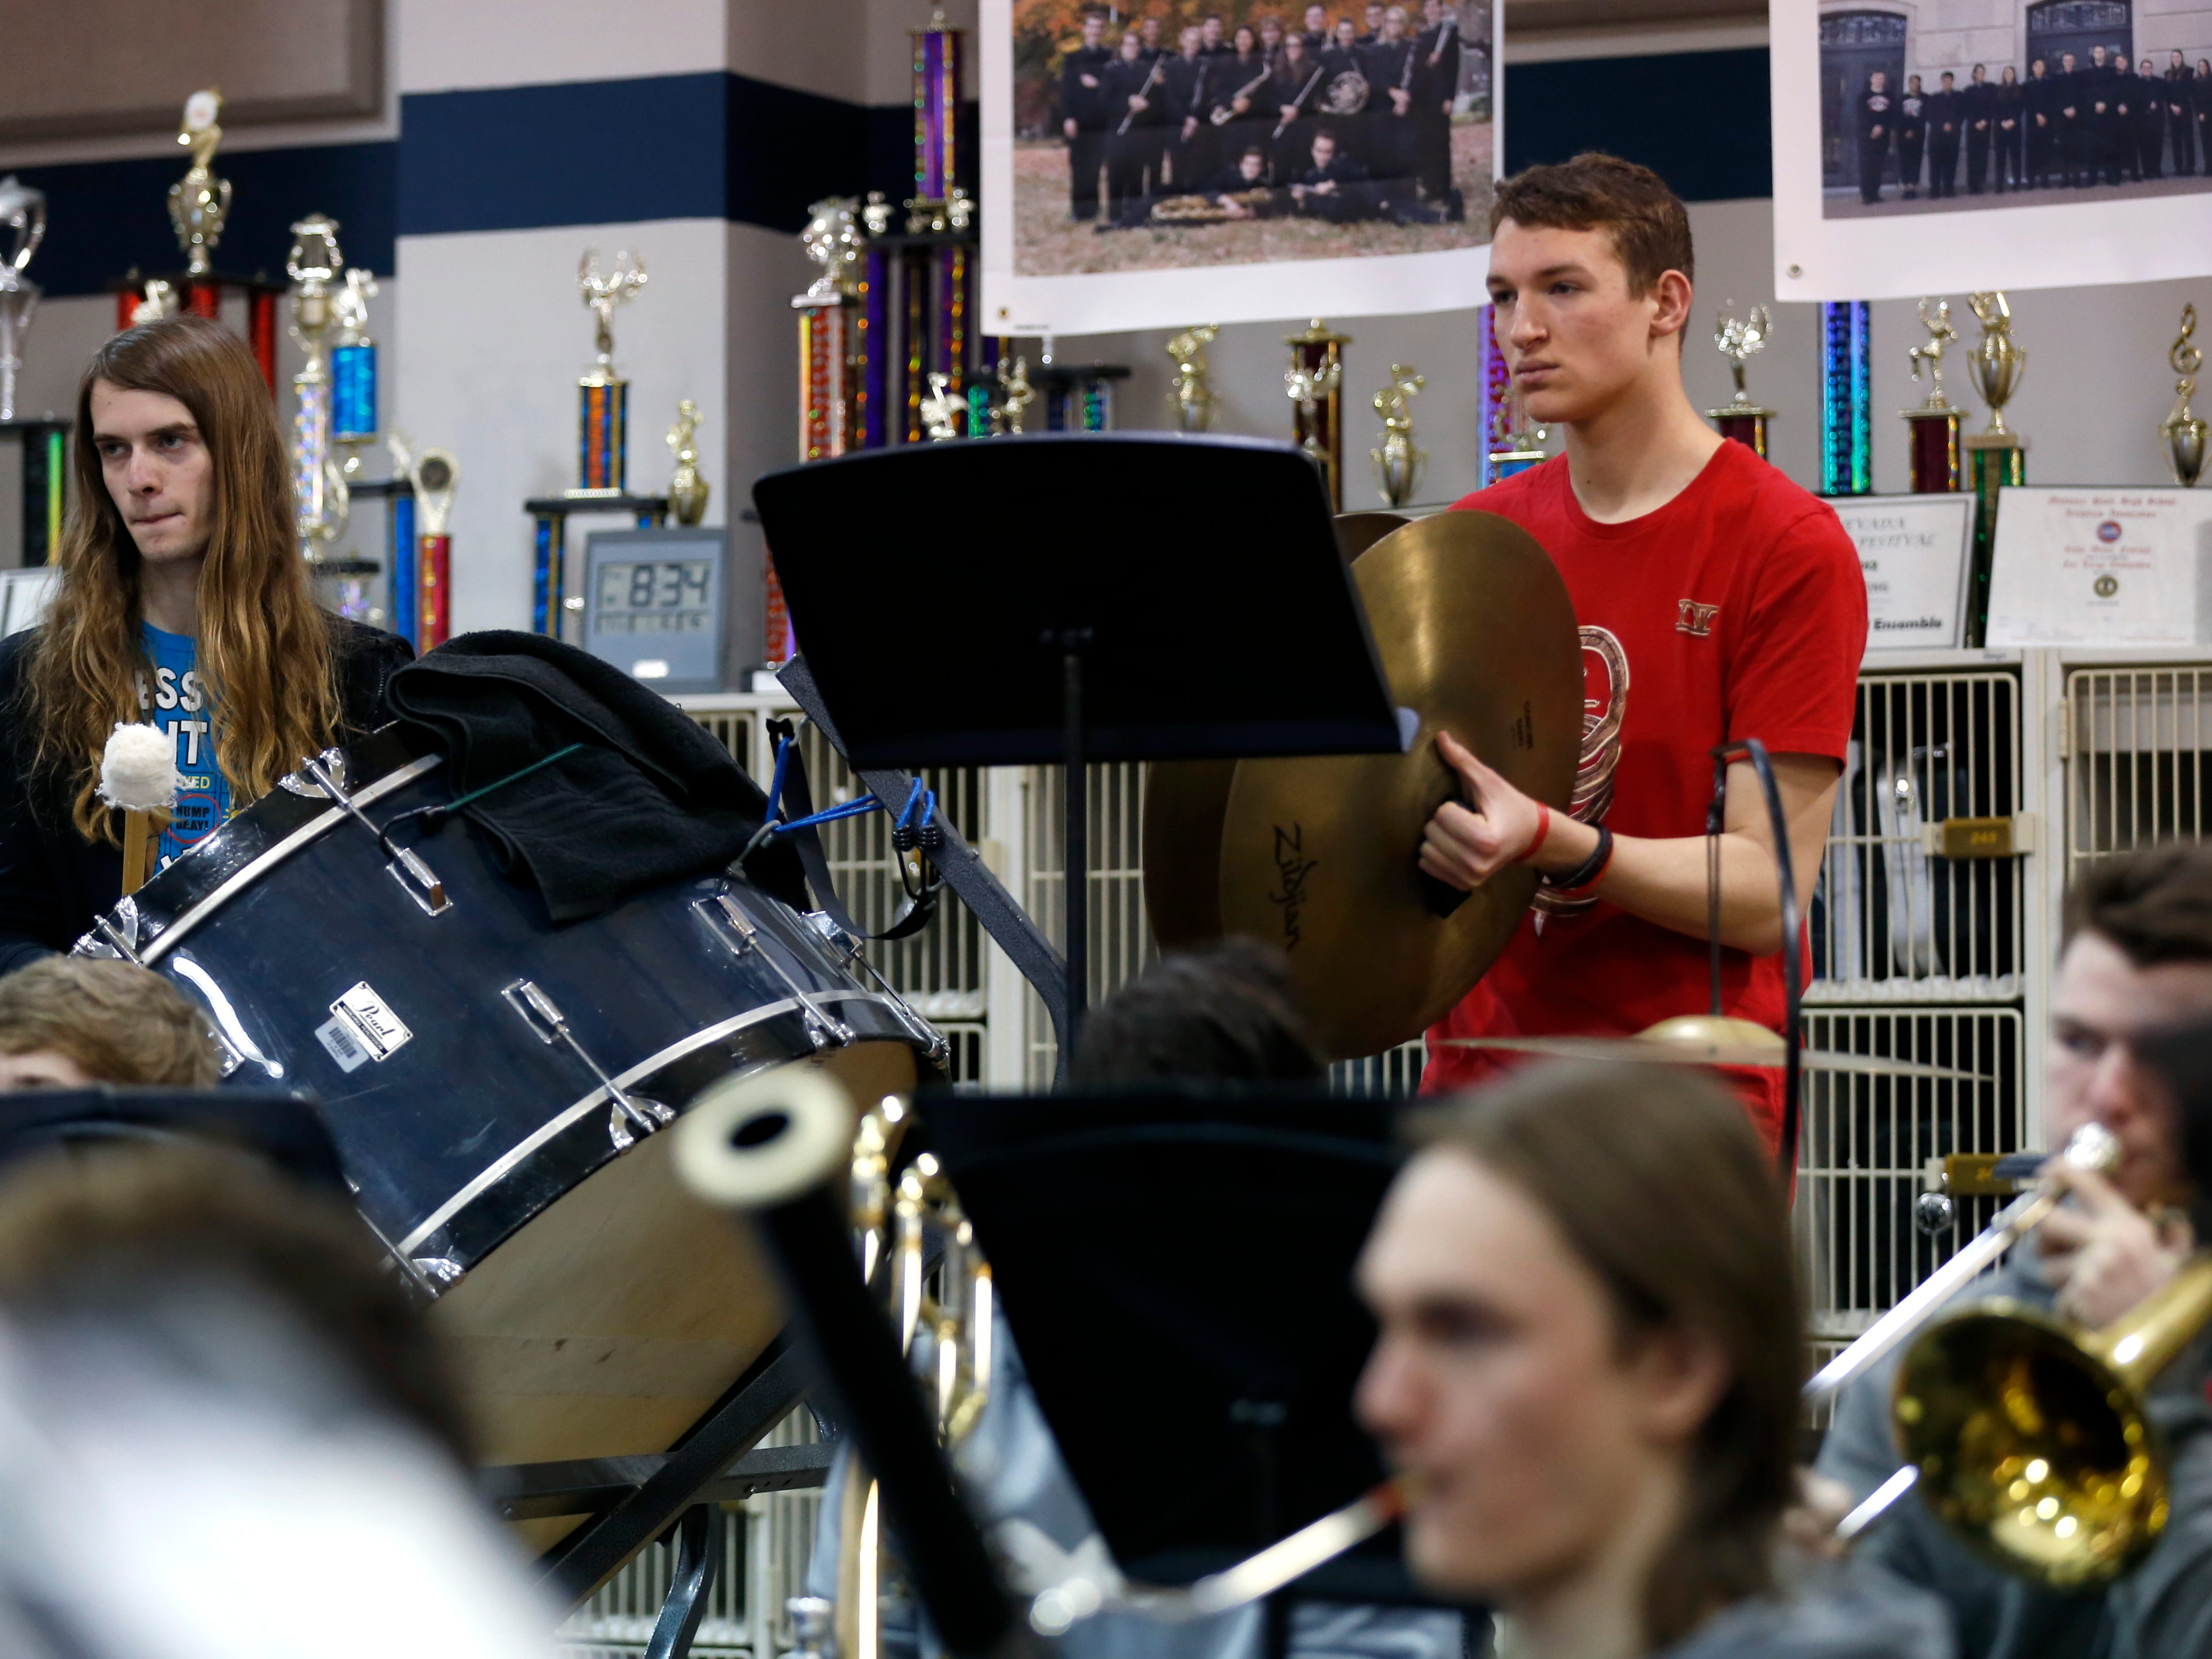 Nolan Musick, a Central High School senior, plays cymbals during band practice on Wednesday, Jan. 16, 2018. The 53-student wind ensemble will be a featured at the annual state conference of the Missouri Music Educators Association next week.